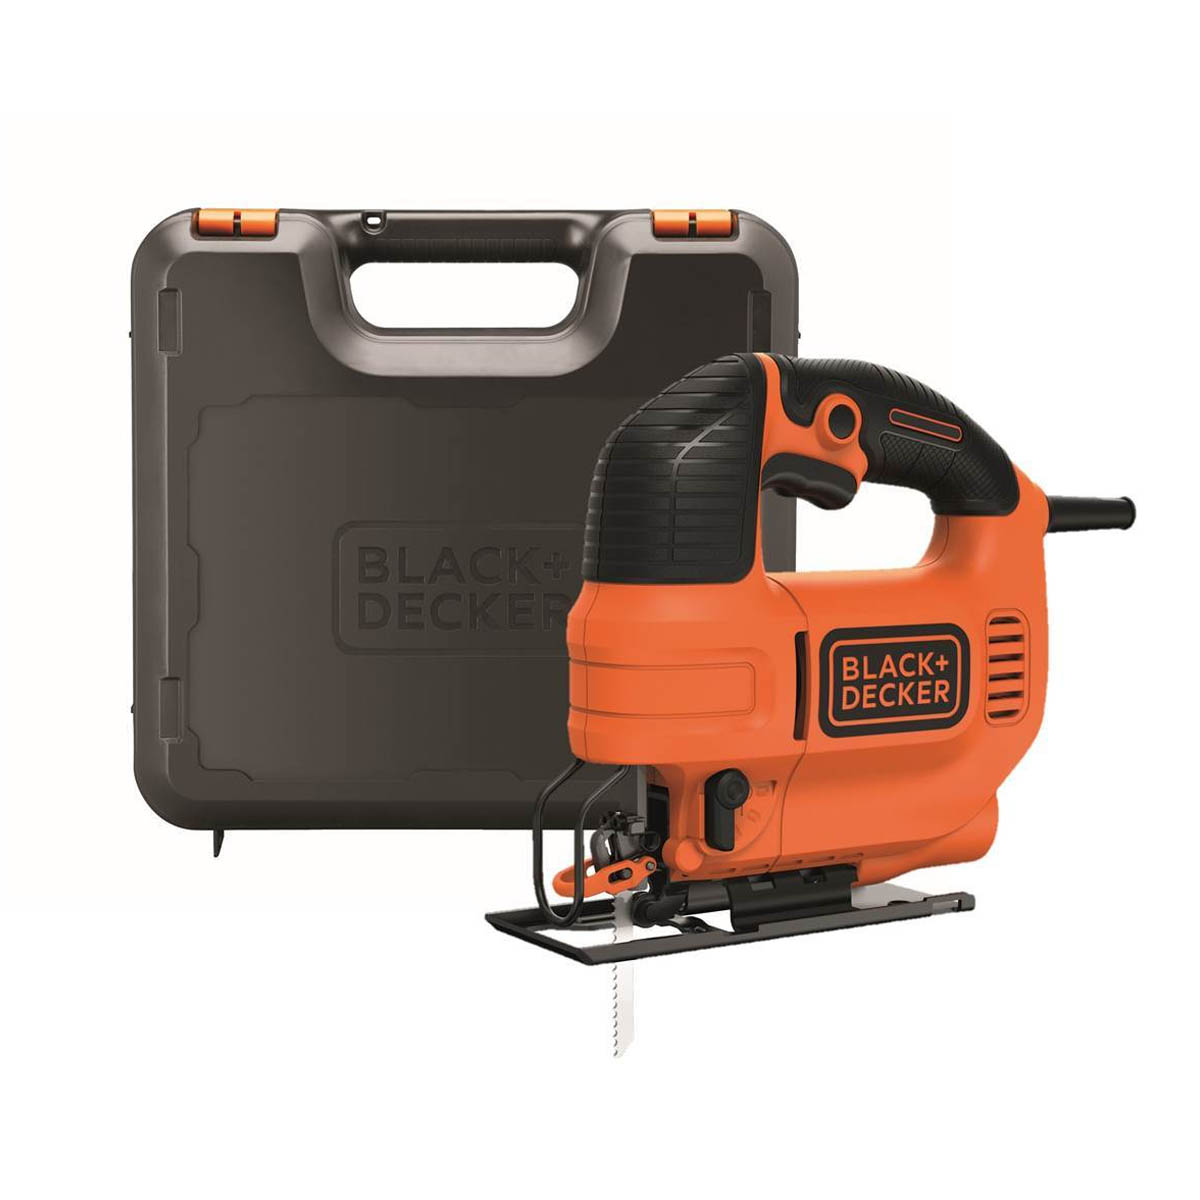 Sierra Caladora Vel Variable 550w Ks701pek Black & Decker